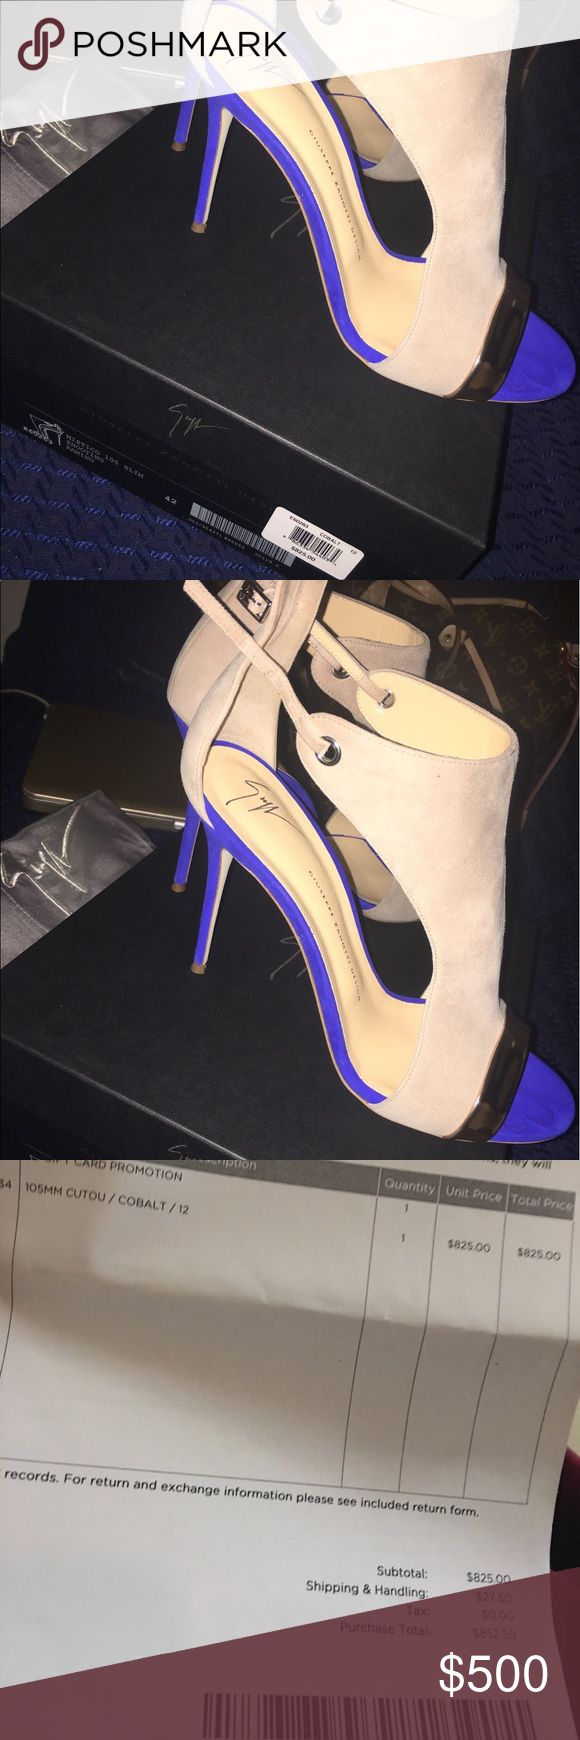 Giuseppe Zanotti I'm selling this Giuseppe Zanotti shoes. Cobalt blue. I wear size 11 shoe but these run small so I had to get a size 42/12. Only worn once Giuseppe Zanotti Shoes Heels